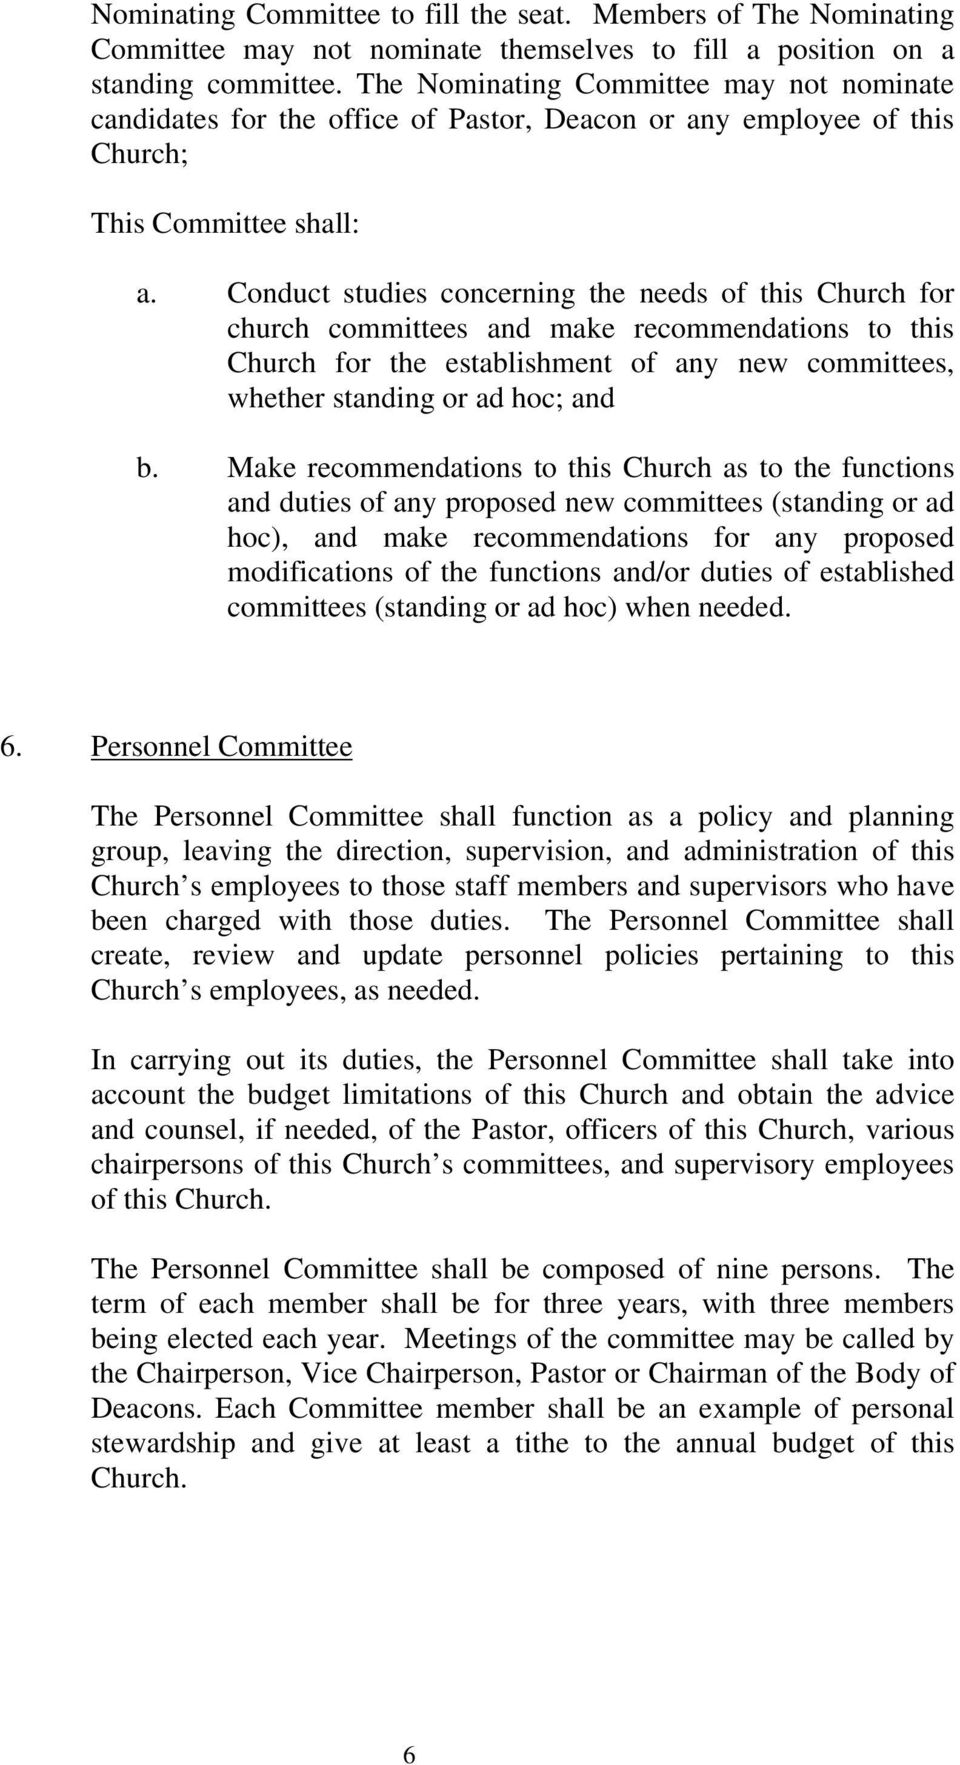 Conduct studies concerning the needs of this Church for church committees and make recommendations to this Church for the establishment of any new committees, whether standing or ad hoc; and b.